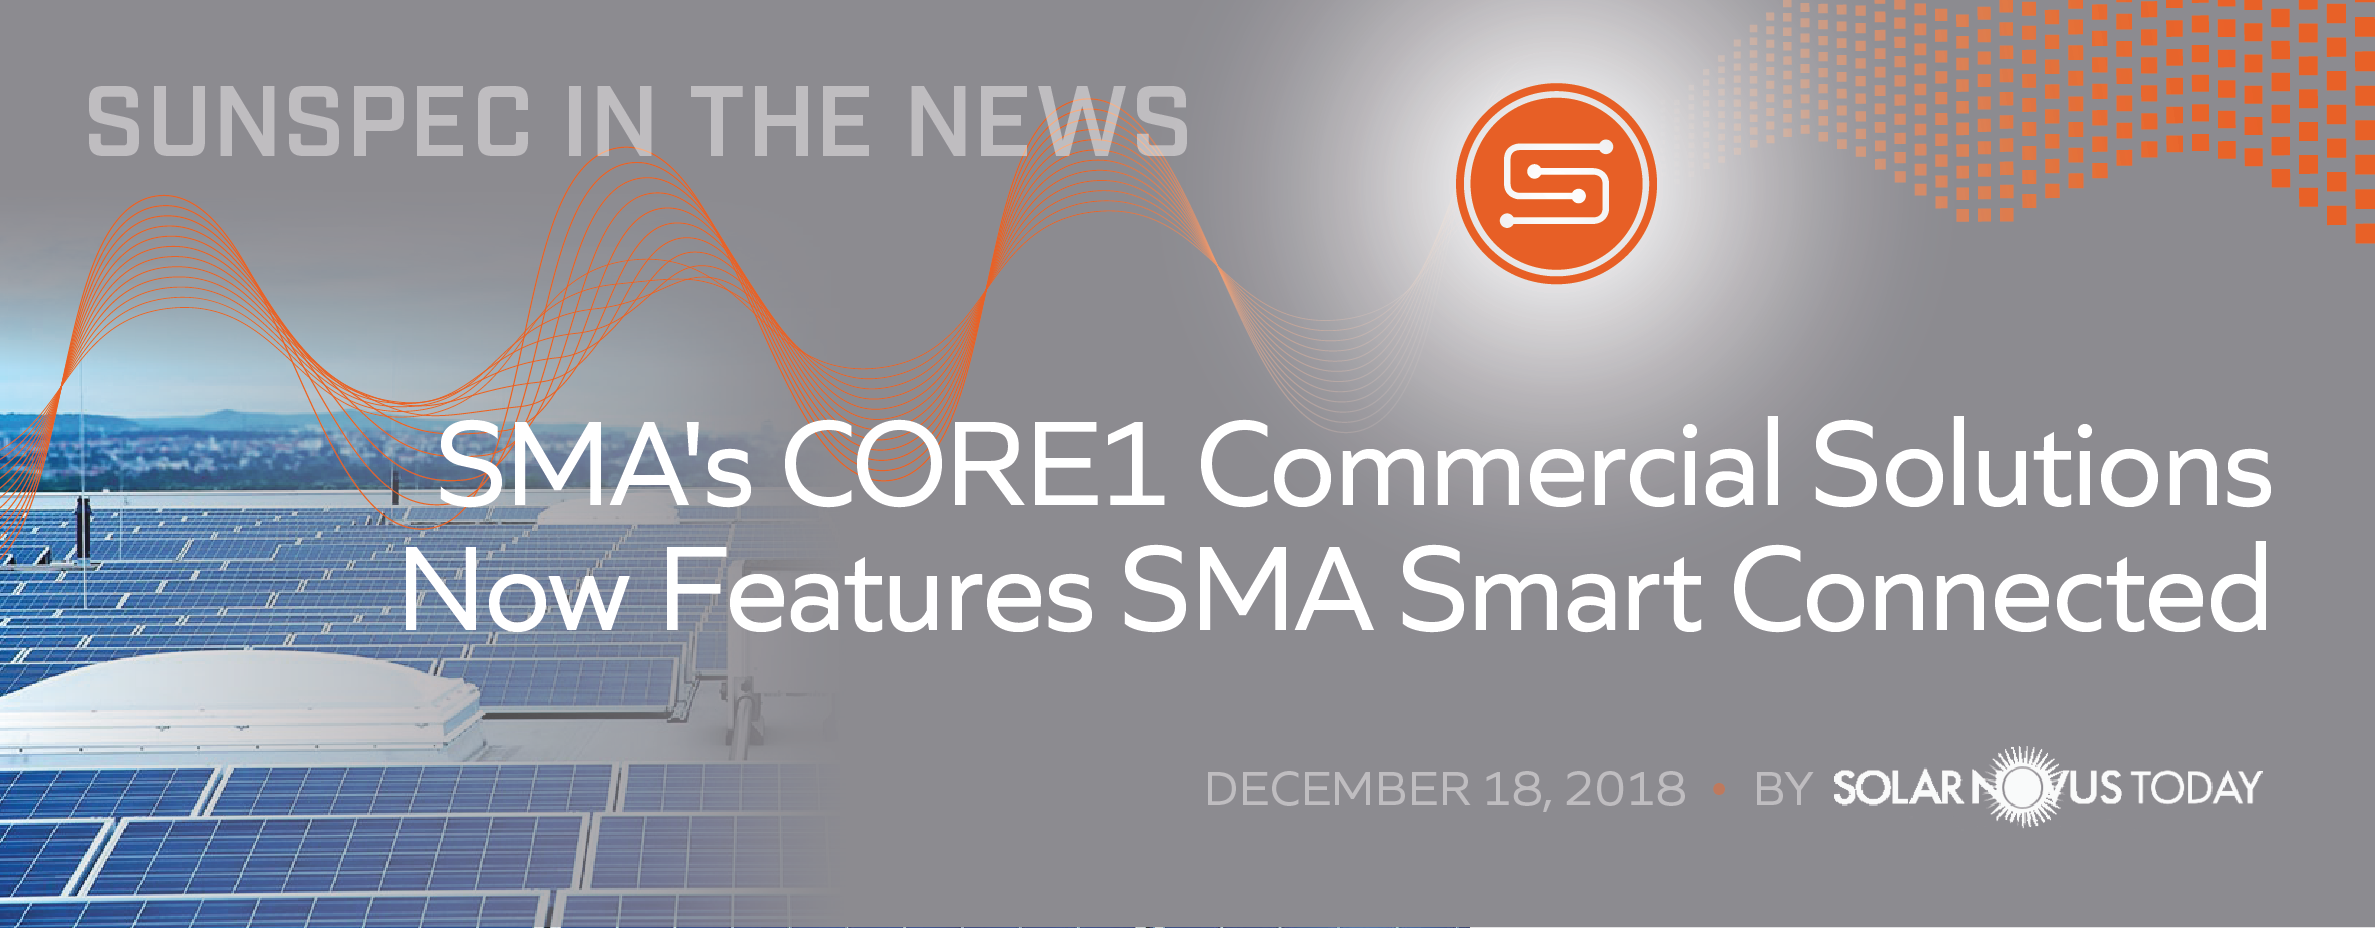 SunSpec in the news - SMA;s CORE1 Commercial Solution image